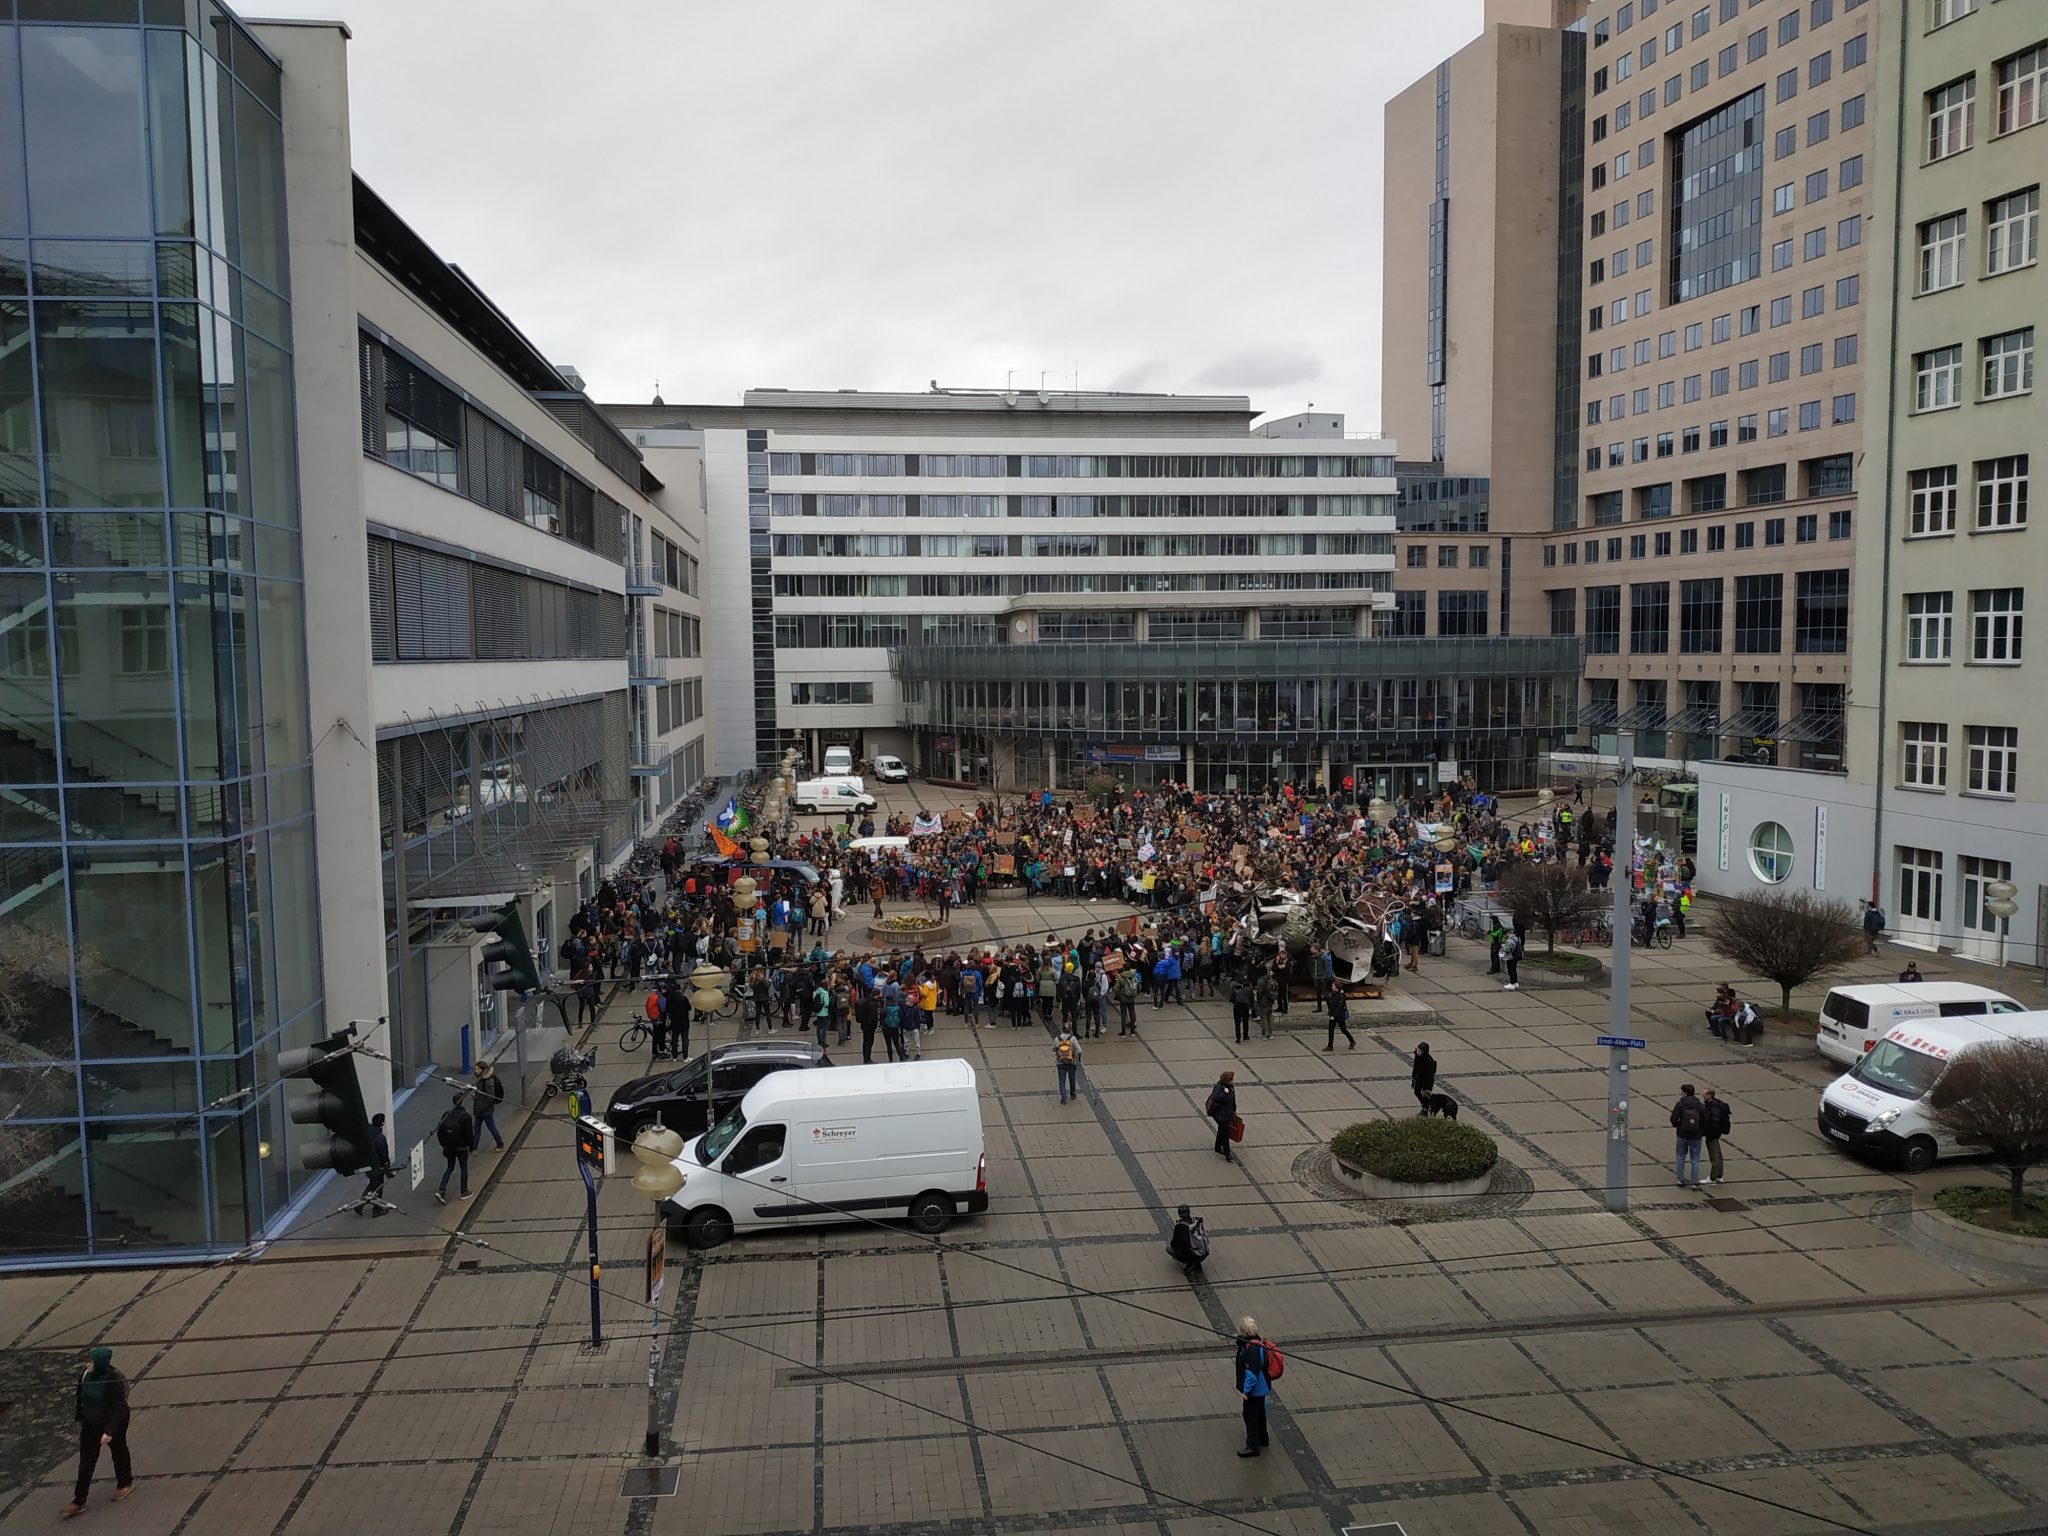 Video: 1000 Demonstrant*innen bei Friday for Future Streik in Jena